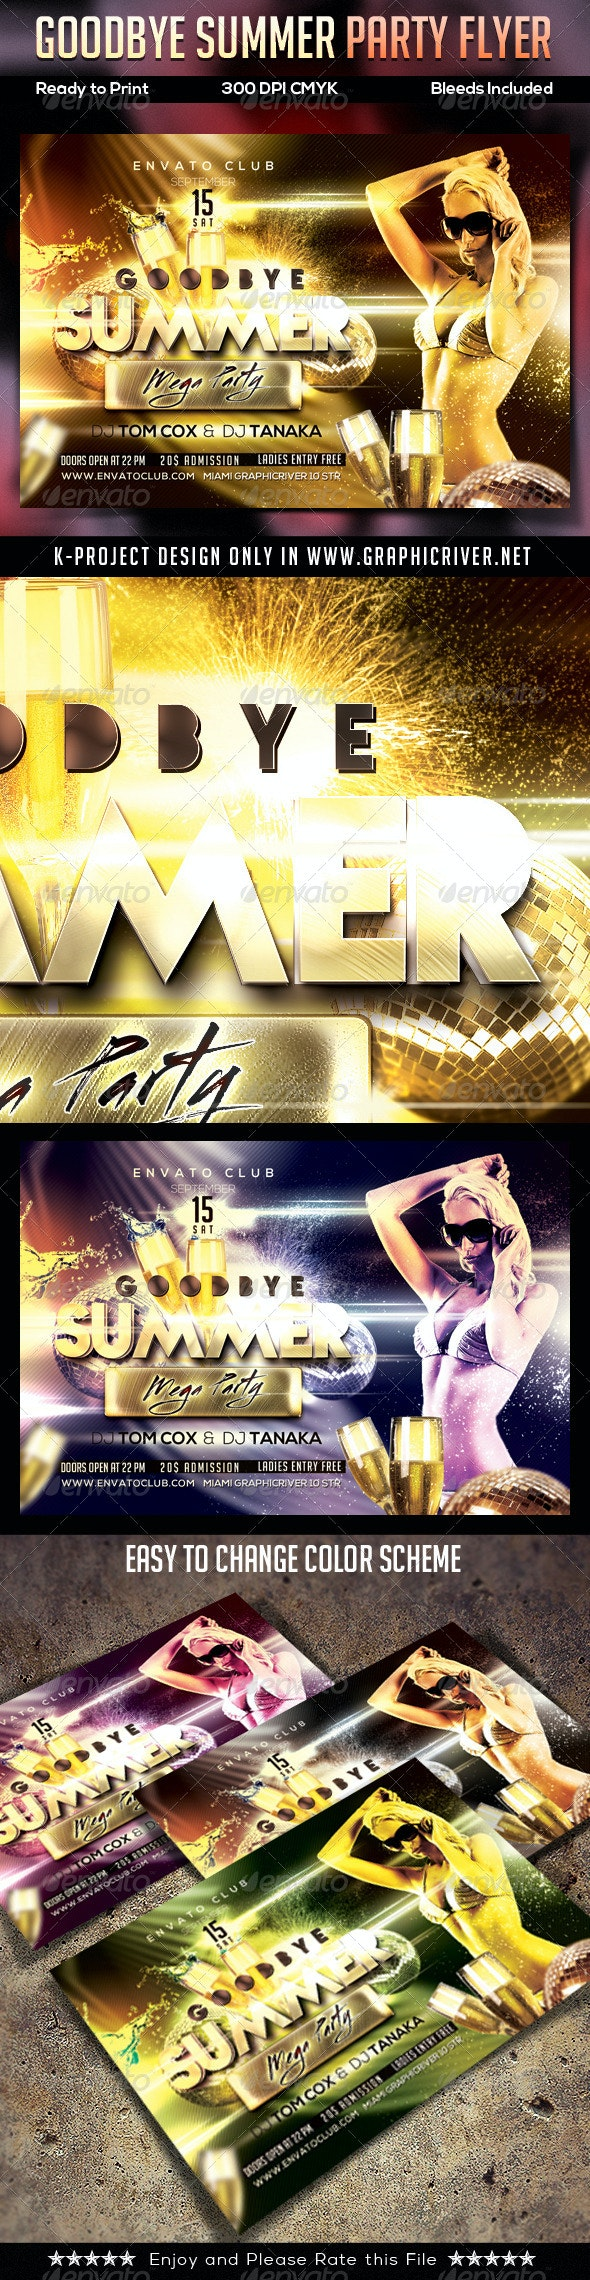 Goodbye Summer Party Flyer - Clubs & Parties Events